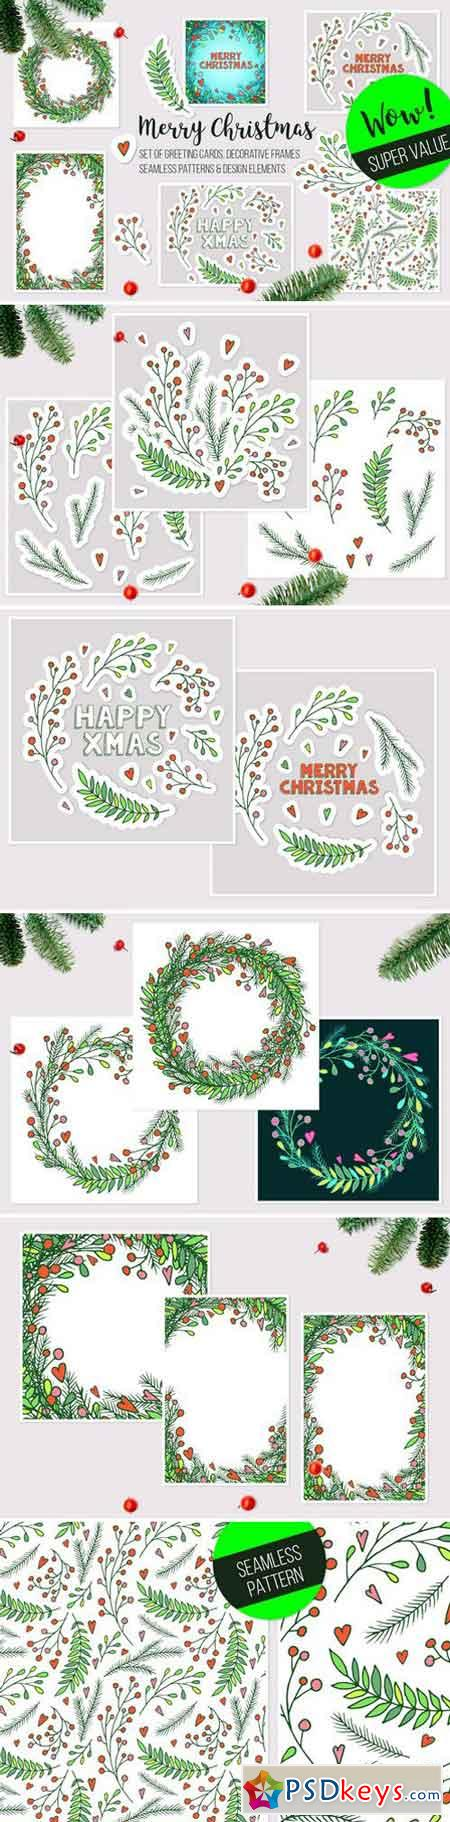 Christmas vector frames, elements 2088095